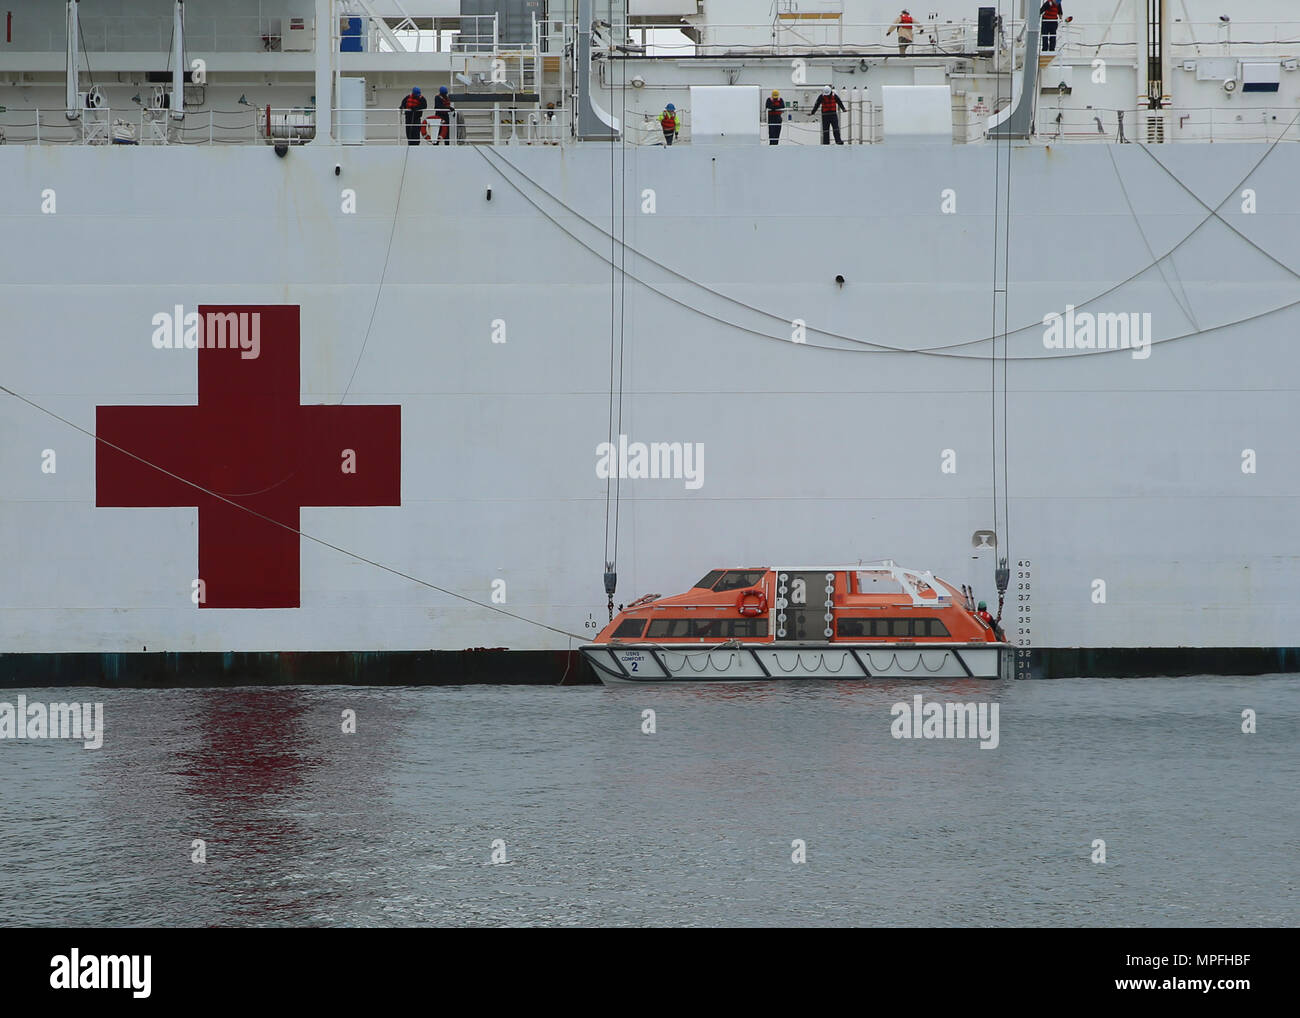 170223-N-OH262-759 ATLANTIC OCEAN (Feb. 23, 2017) Civil service mariners assigned to the Military Sealift Command hospital ship USNS Comfort's (T-AH 20) lower the vessel's tender into the water. Comfort's underway period was part of the 2017 Comfort Exercise (COMFEX). The exercise is a quarterly training battery designed to keep the medical personnel, support staff and civil service mariners who serve aboard the ship proficient in their duties. Comfort provides an afloat, mobile, acute surgical medical facility when called upon to the U.S. military, and hospital services to support U.S. disast - Stock Image